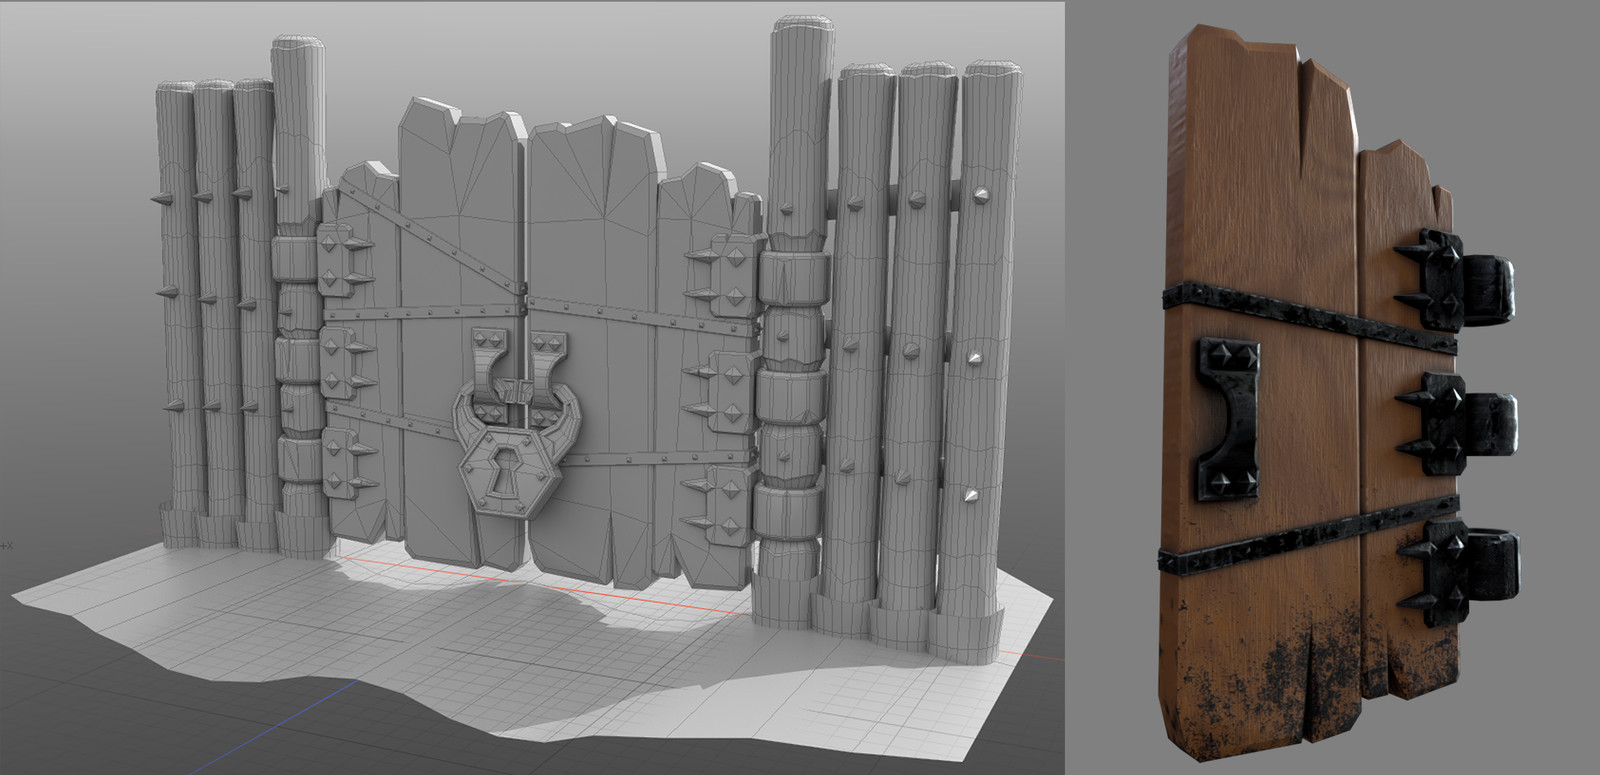 When I decided to texture this asset myself I needed to up the detail a bit. I also swapped out the ropes with metal strapping after doing some initial material tests.